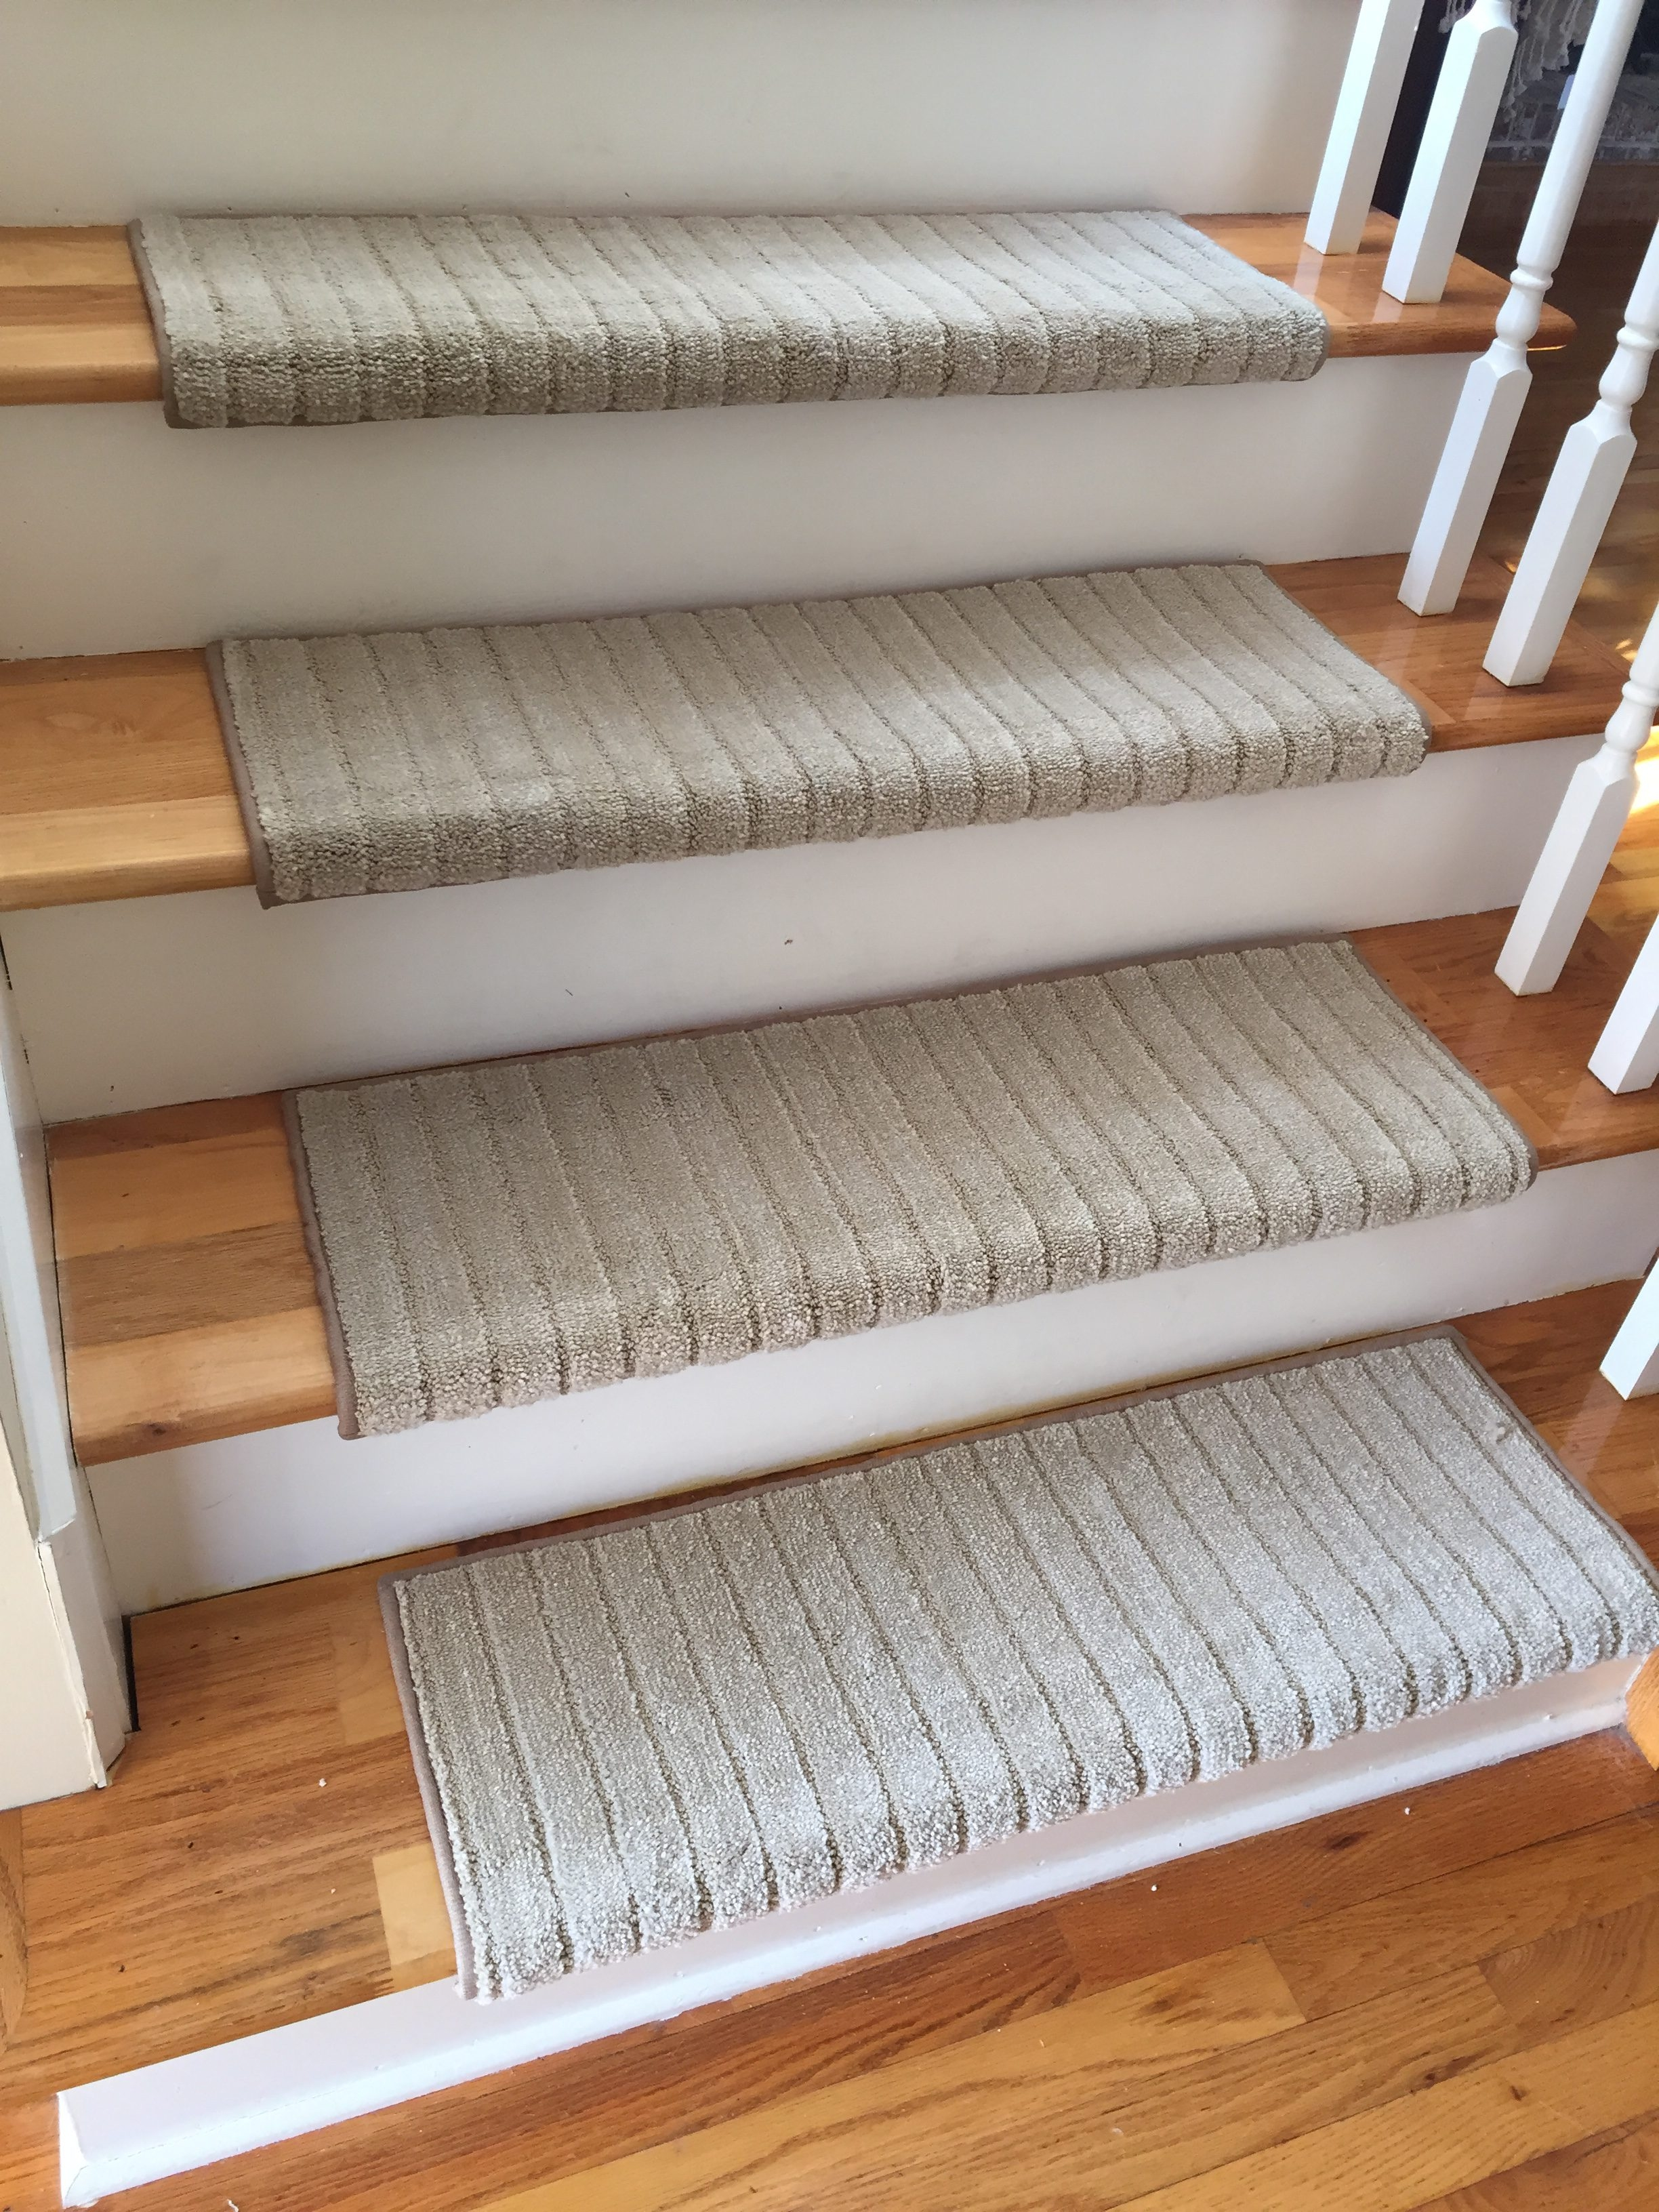 True Bullnose Carpet Stair Tread Mulberry Honey Glaze Sold In Bullnose Stair Tread Rugs (Image 15 of 15)